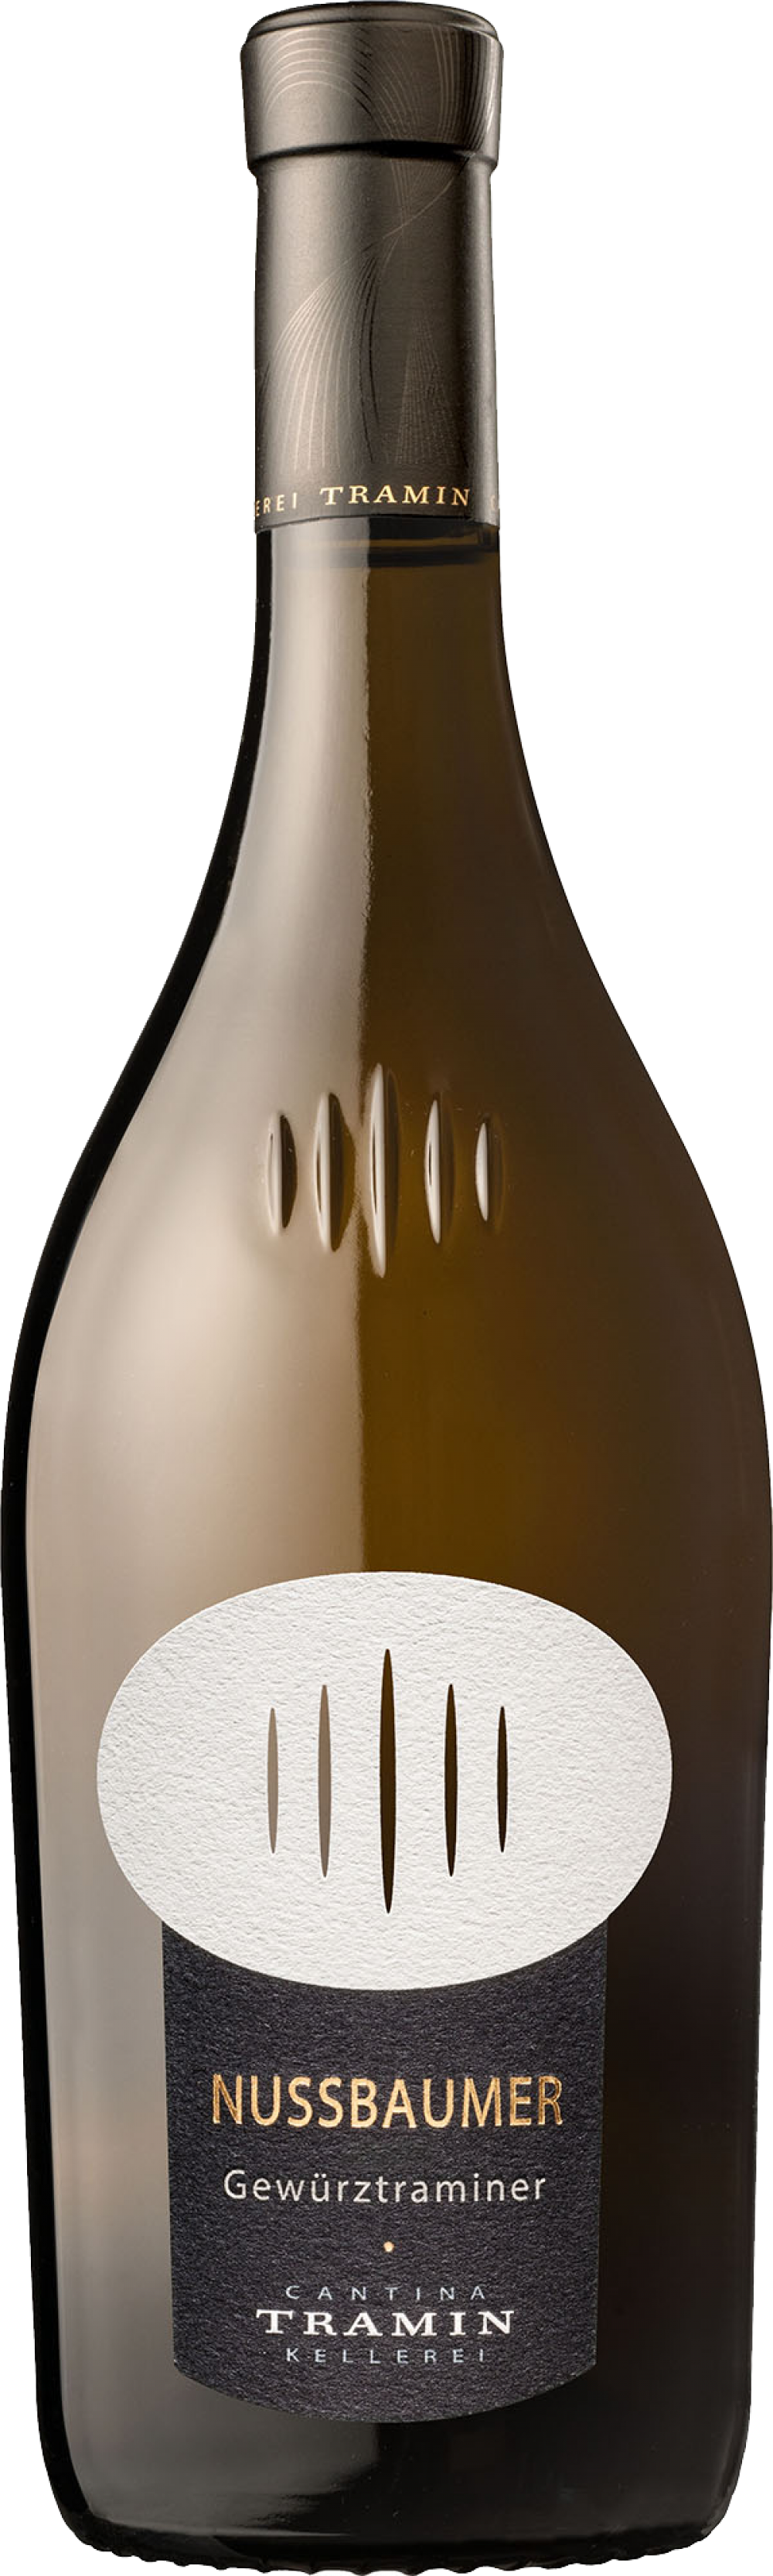 files/images/wines/Italy/cantina-tramin/2014 NUSSBAUMER .png